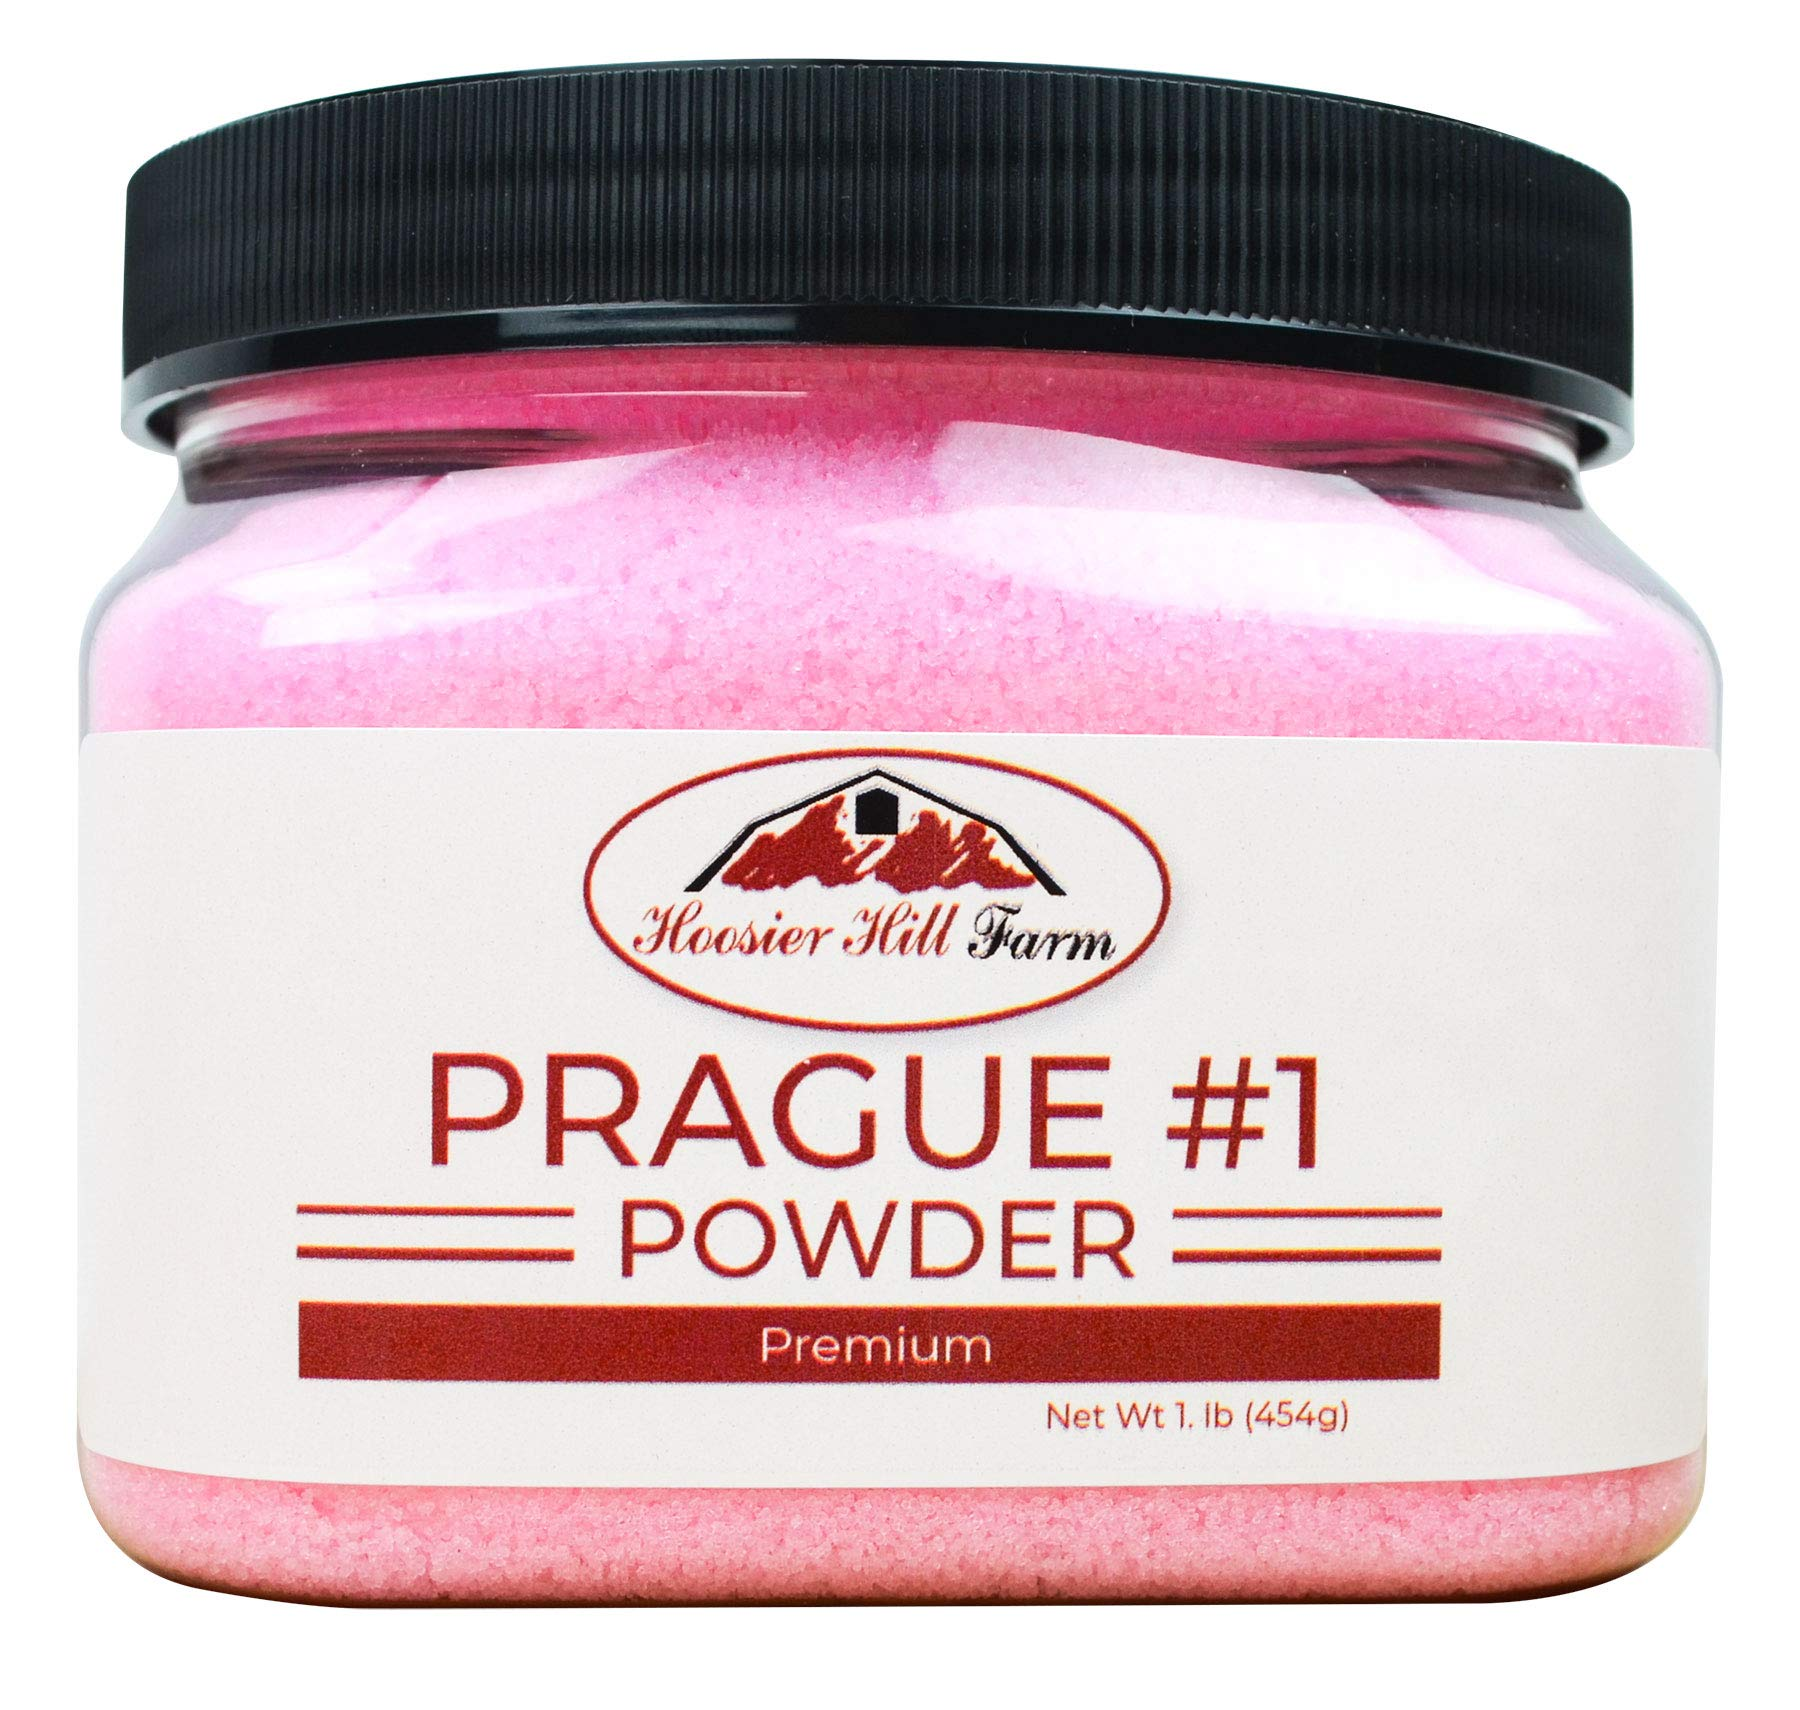 Hoosier Hill Farm Prague Powder Curing Salt, Pink, 1 Pound (Packaging may vary)